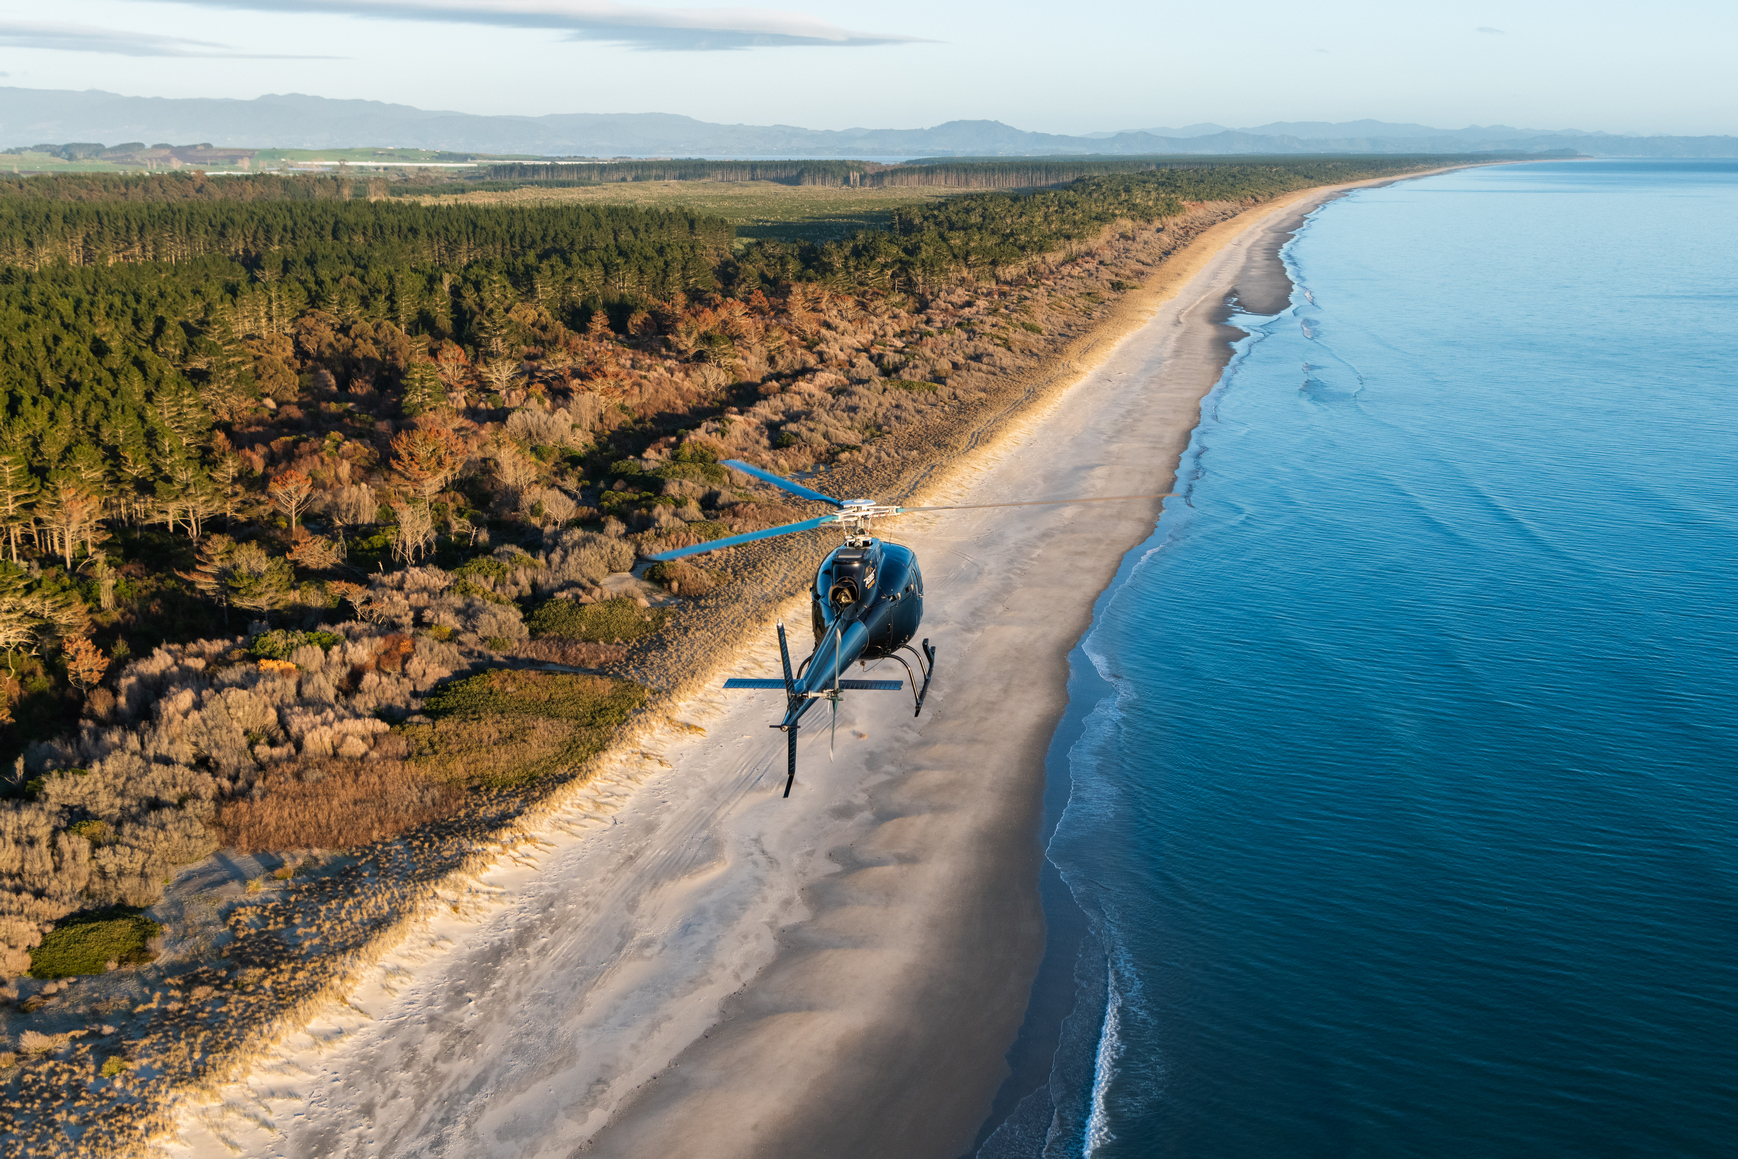 Flying along the Bay of Plenty coast